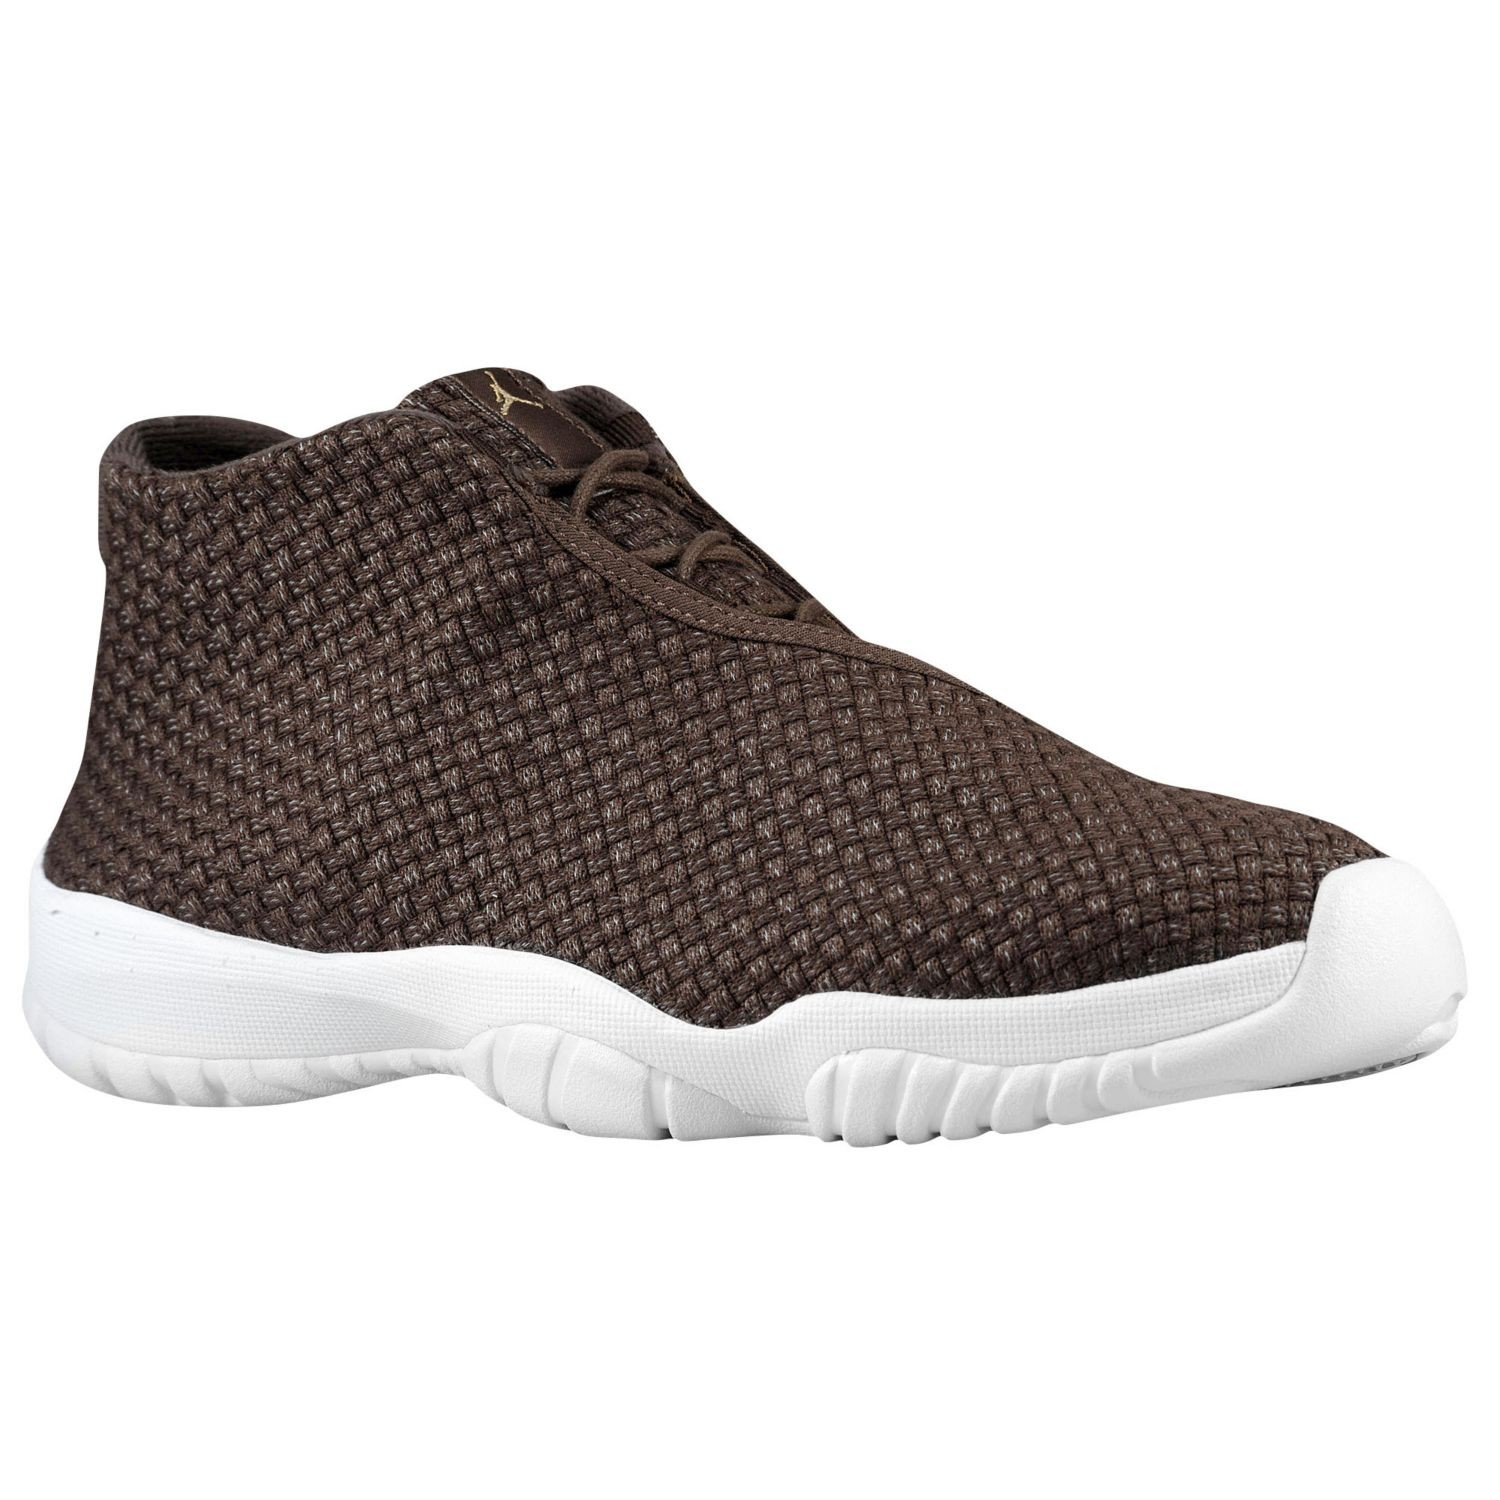 Air Jordan Future Baroque Brown White 656503 200 Mens Shoes